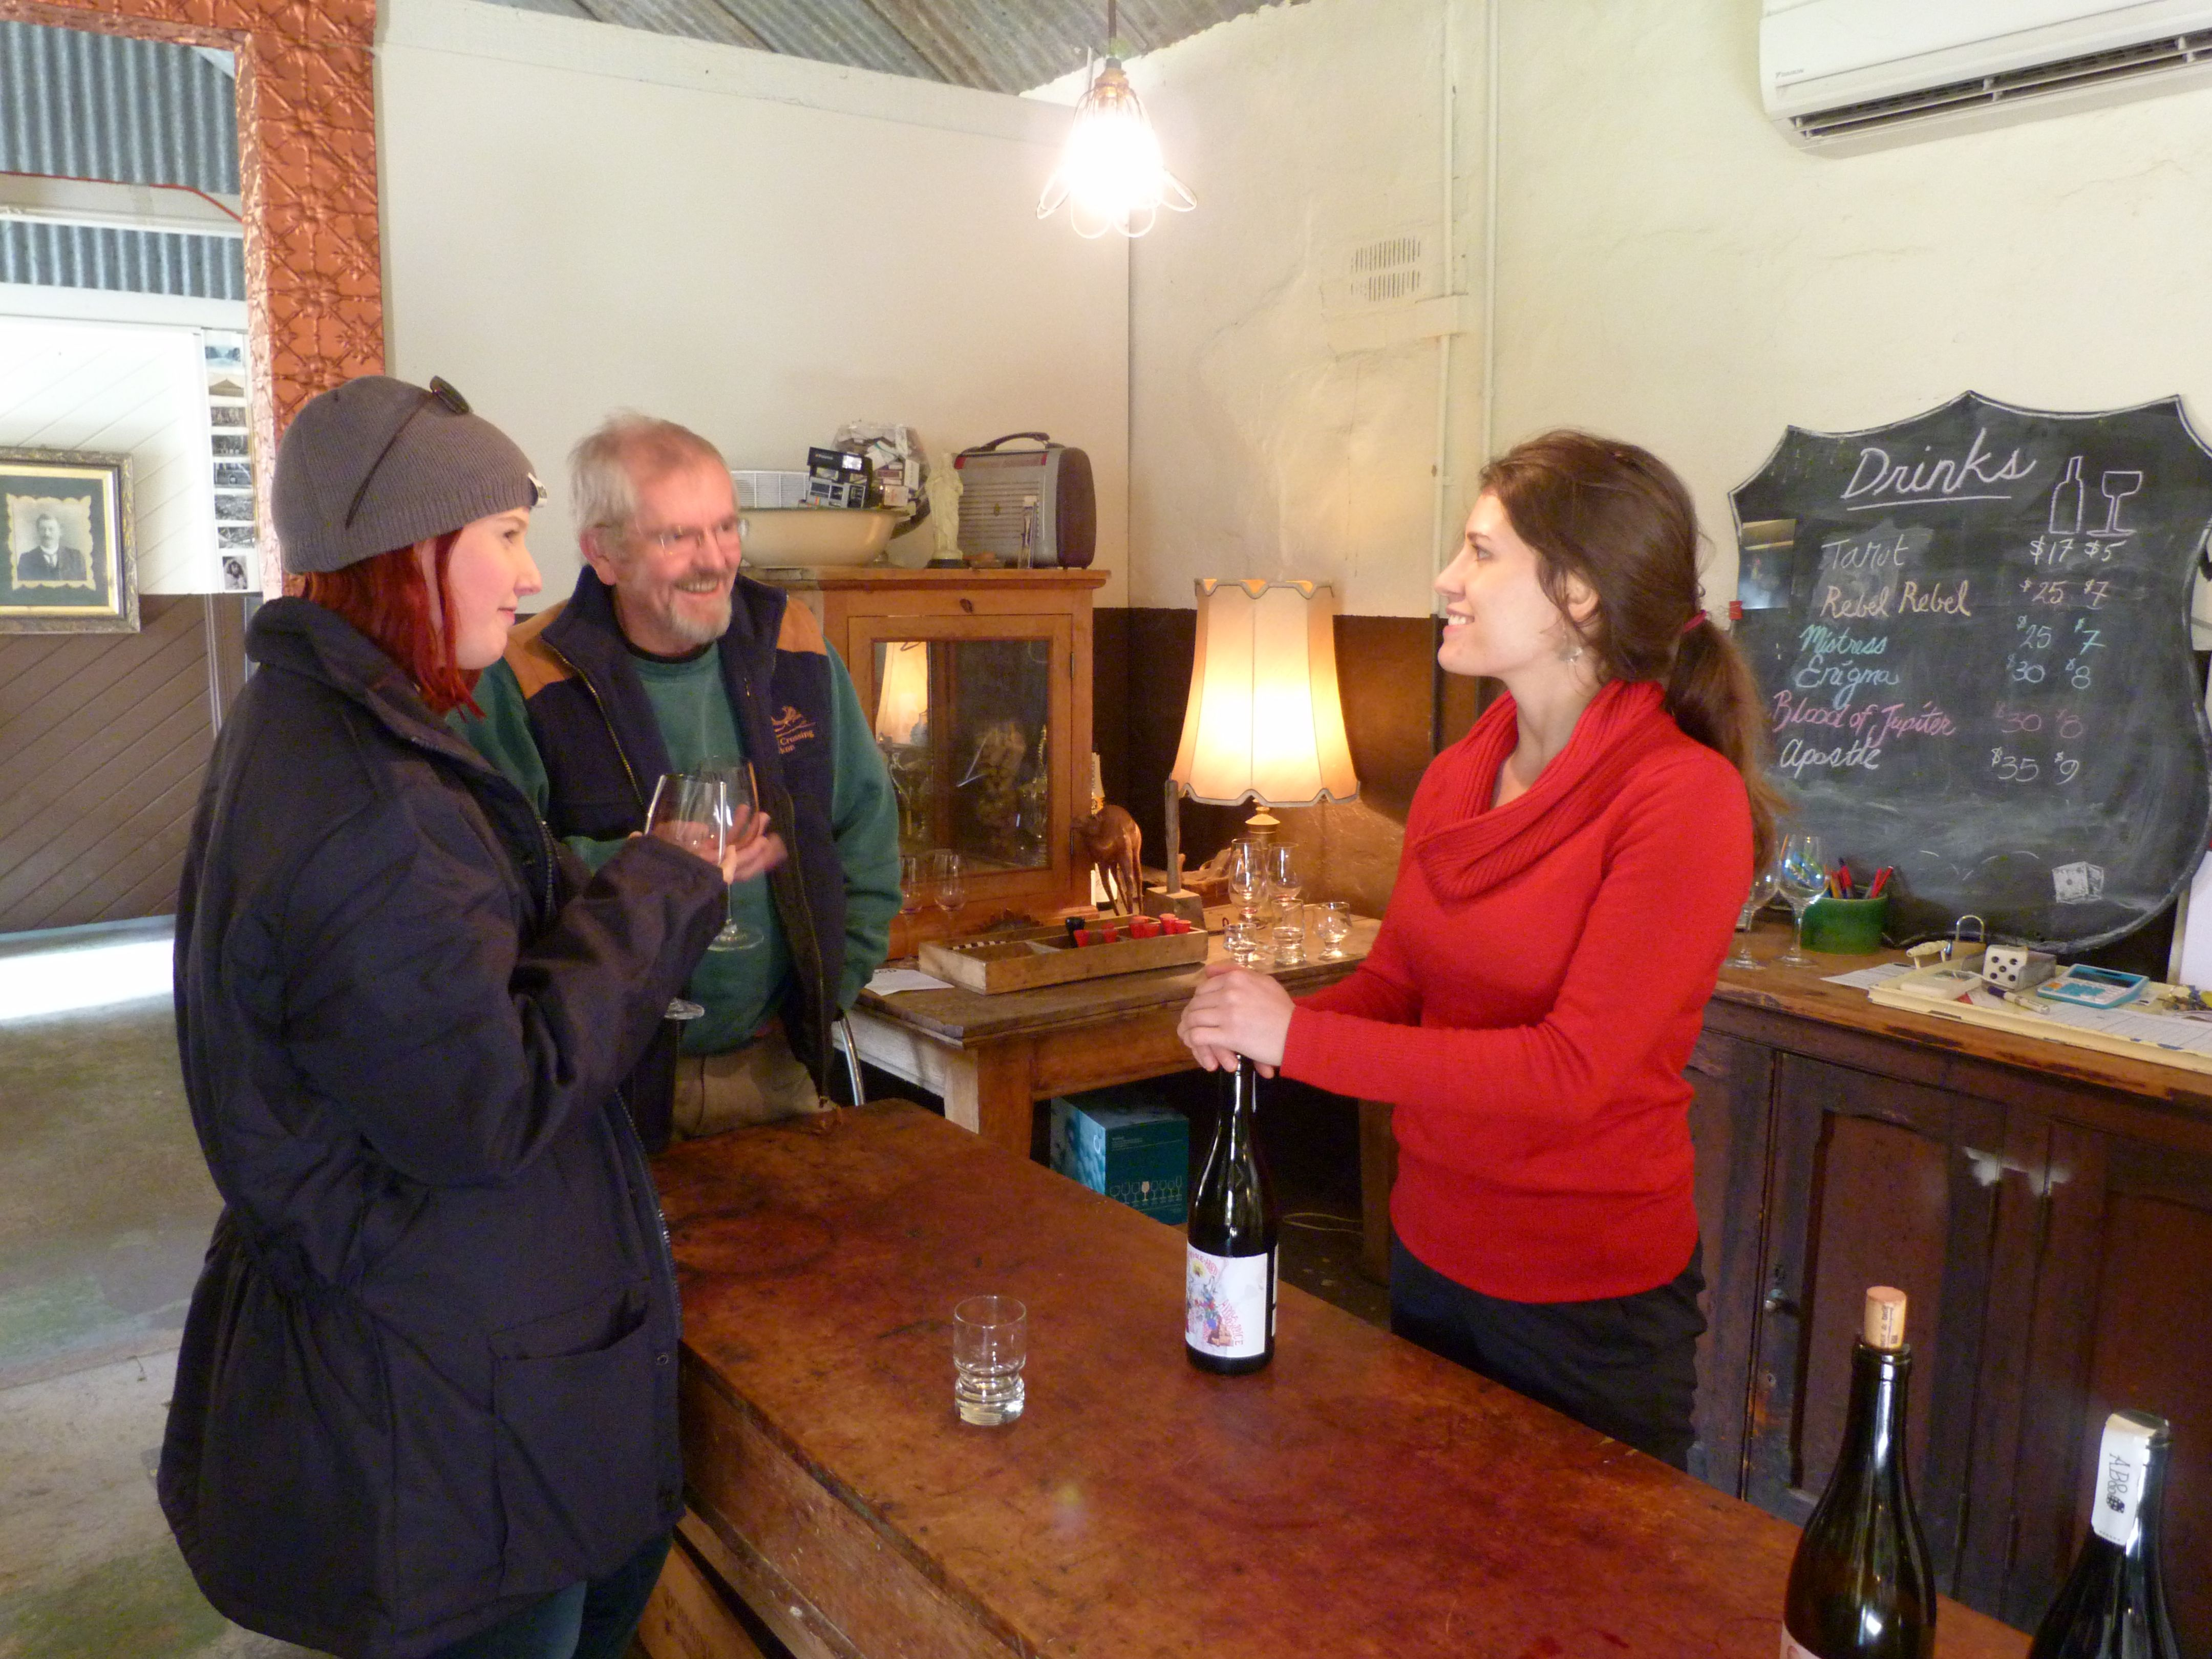 Http Adelaidehills Realviewtechnologies Com Wine Writer Heather Britton Visits Two New Wineries Wine Writer Winery South Australia